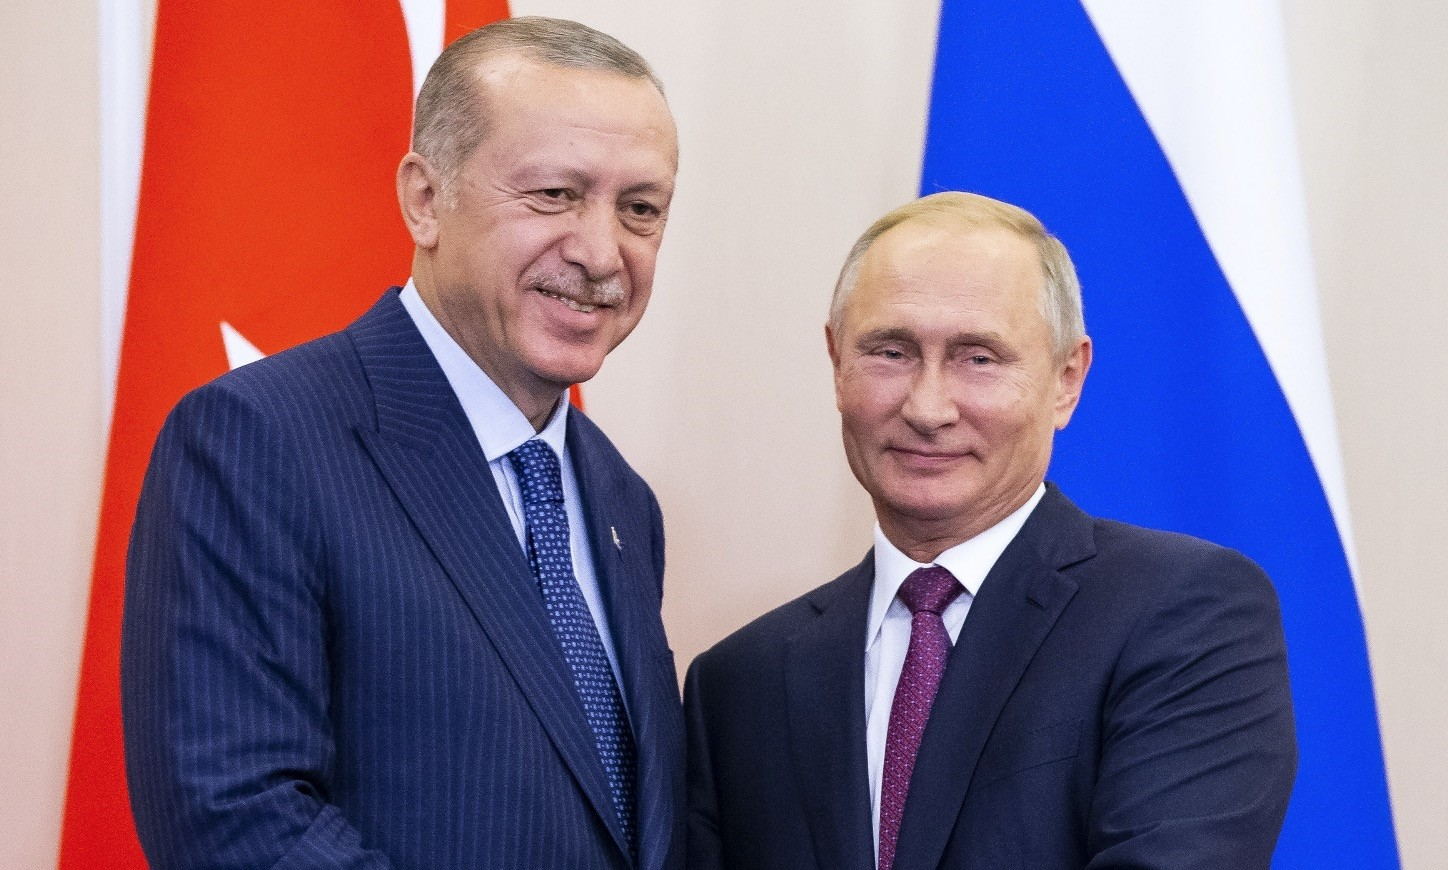 President Recep Tayyip Erdou011fan and his Russian counterpart Vladimir Putin shake hands during a news conference in Sochi, Sept. 17.